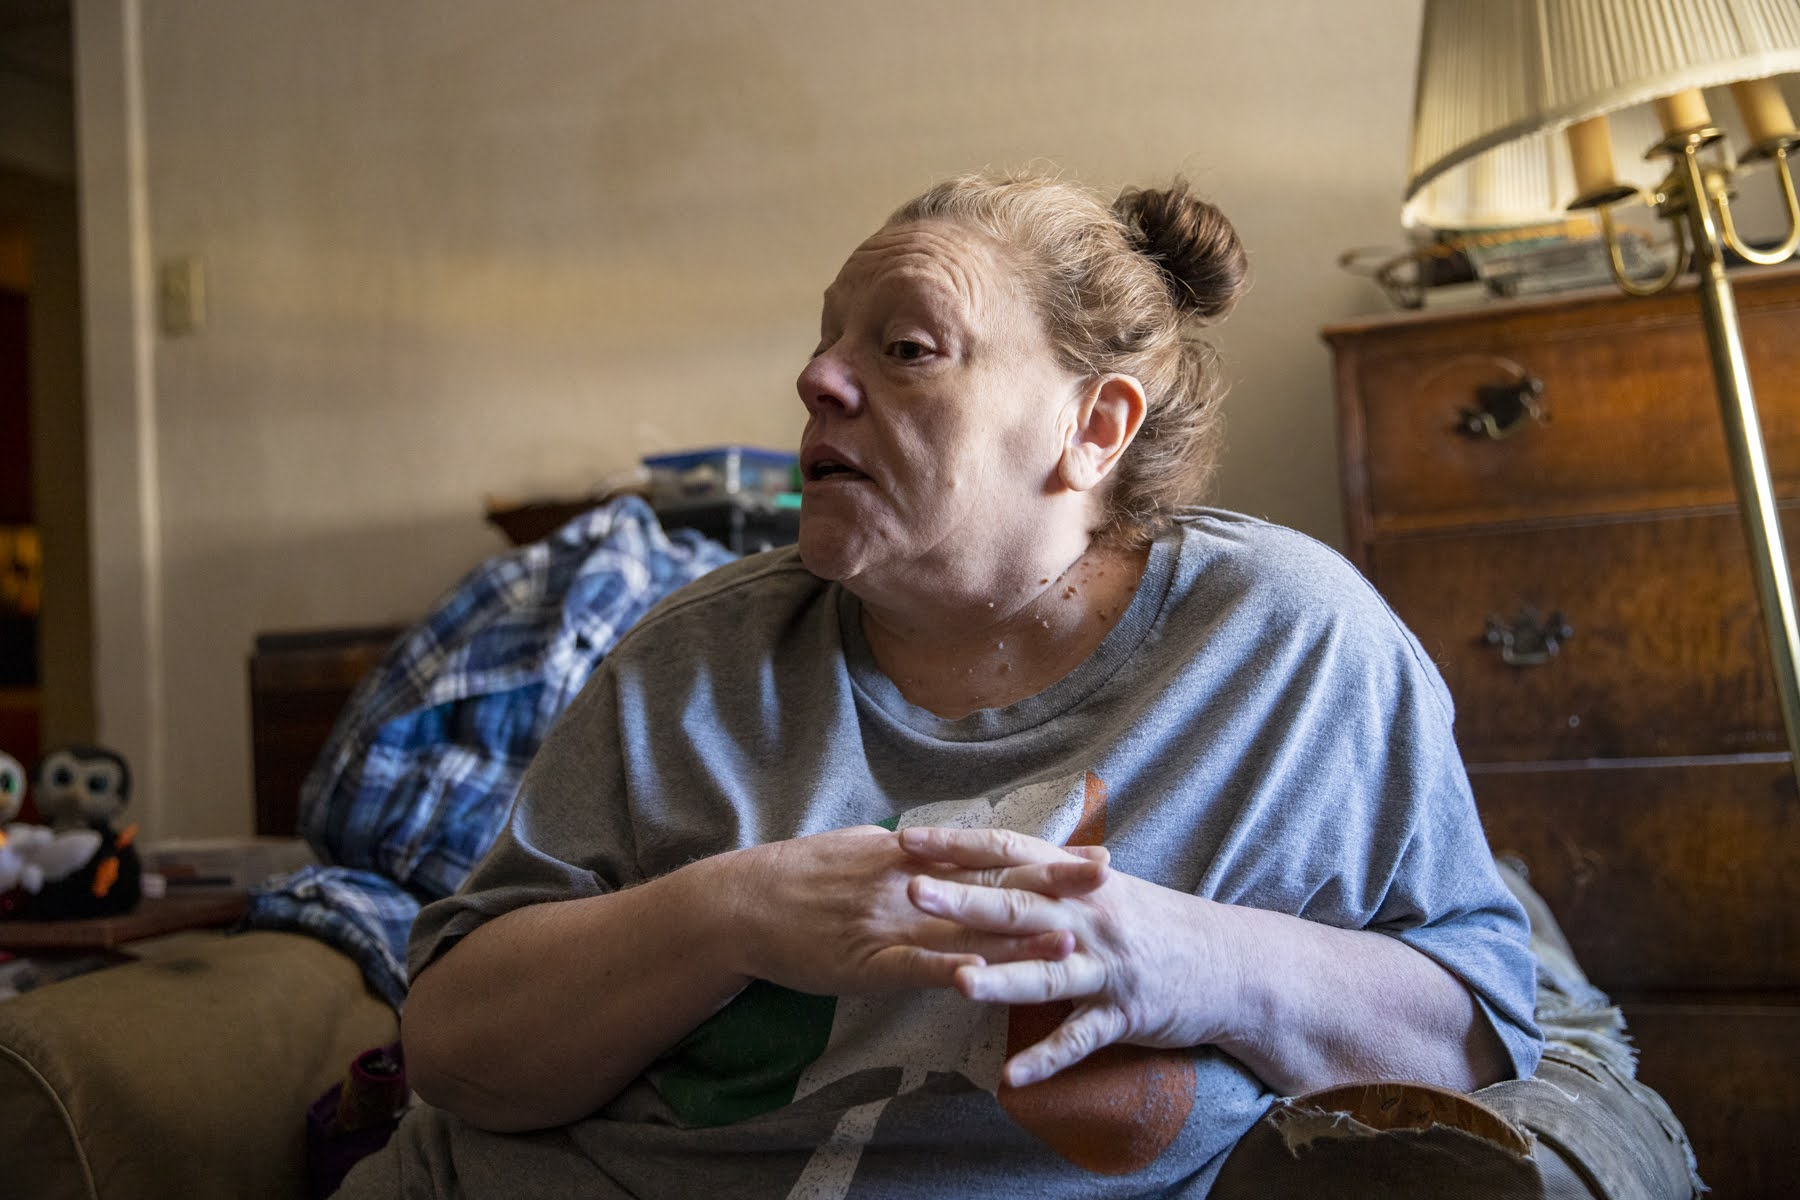 Mary Ellen Barber, 58, sits in the living room of her apartment in Avalon, in which she endured a leaky roof during March rains. (Photo by Jay Manning/PublicSource)